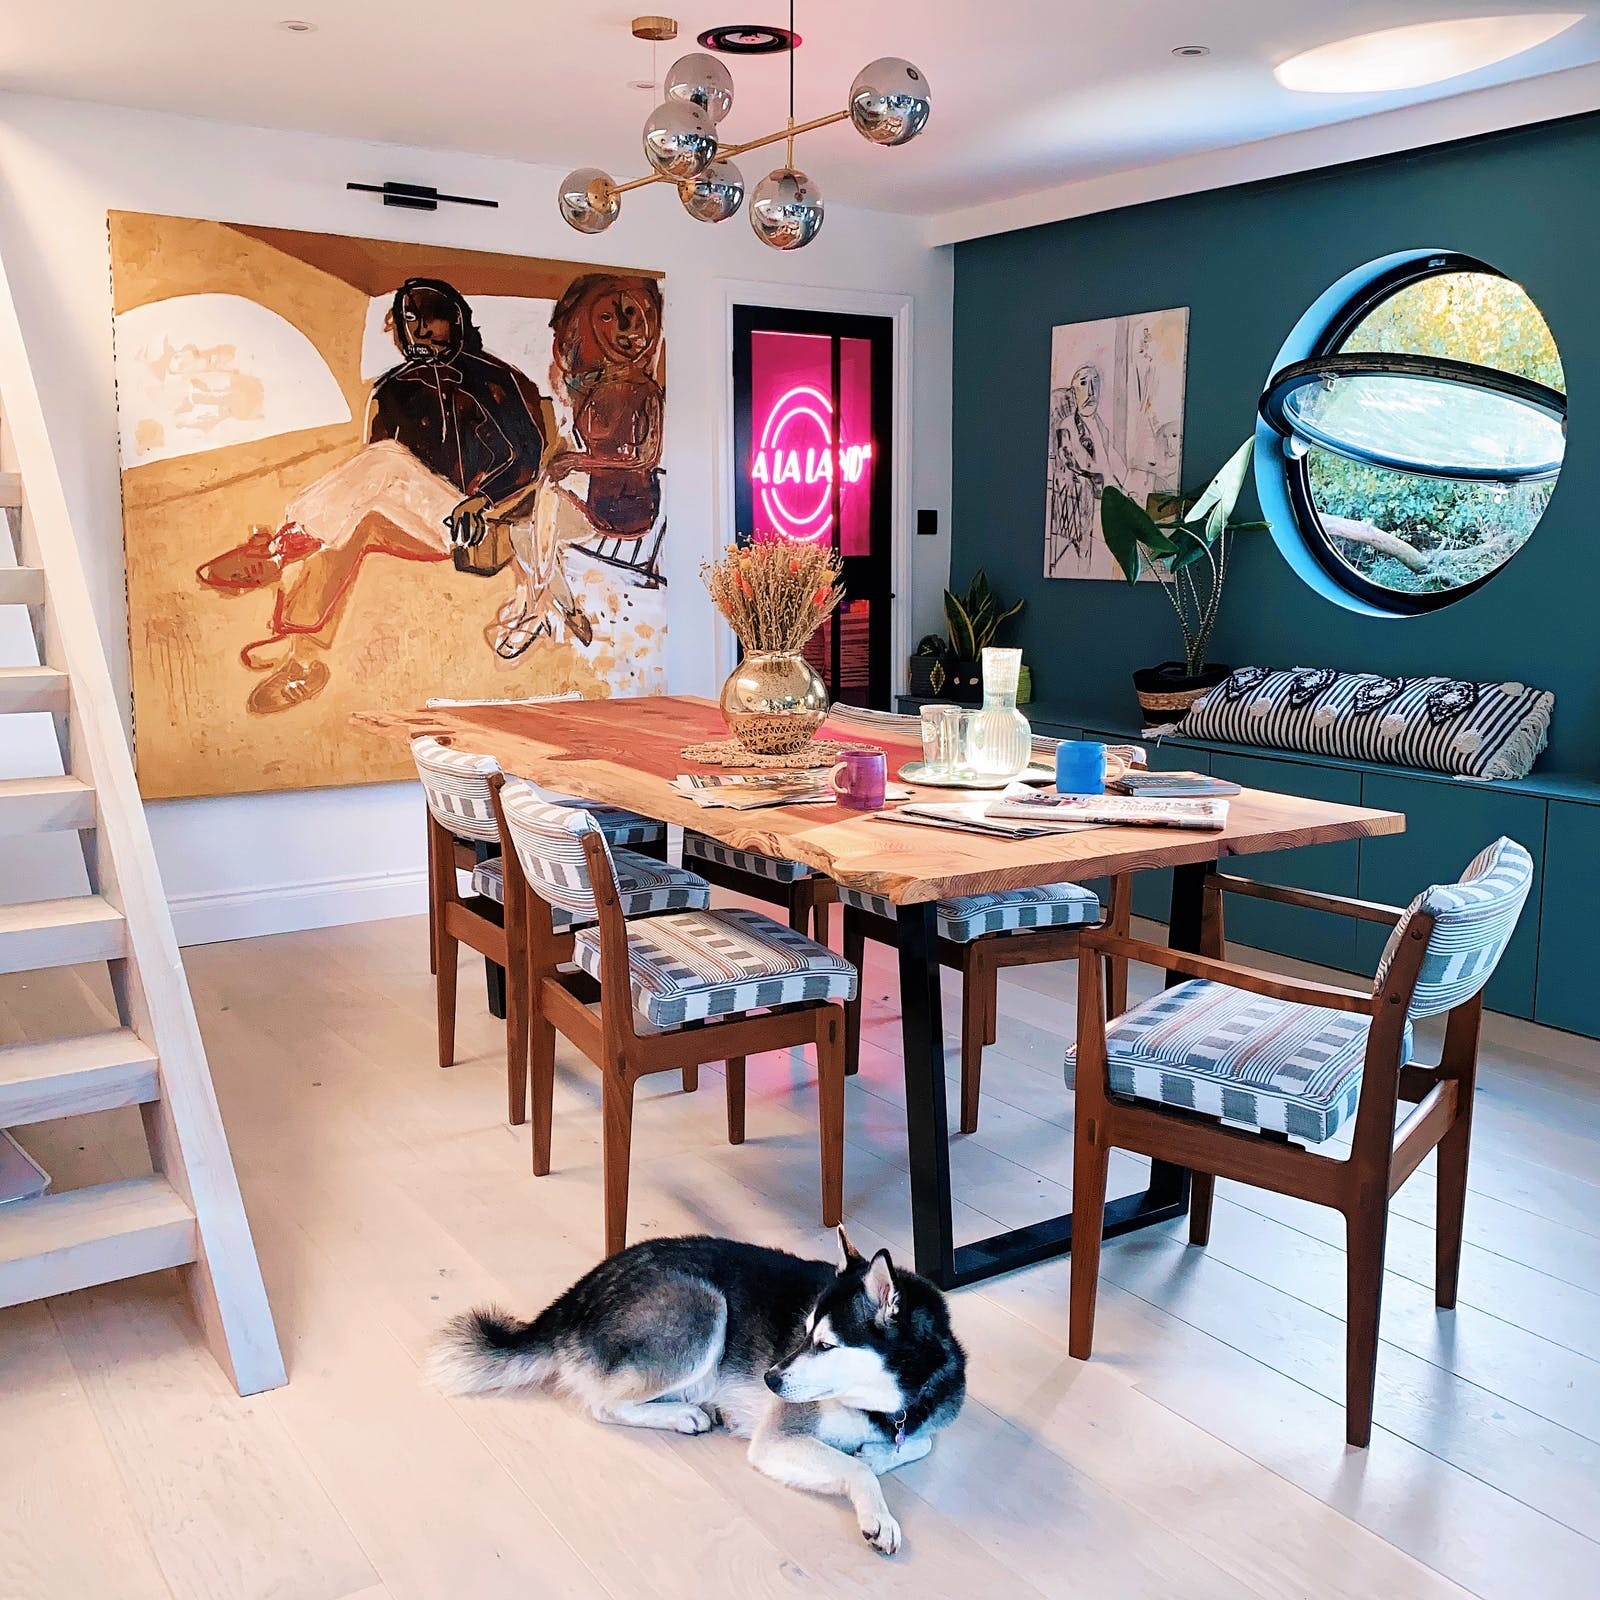 Dining table in an eclectic styled room with a husky